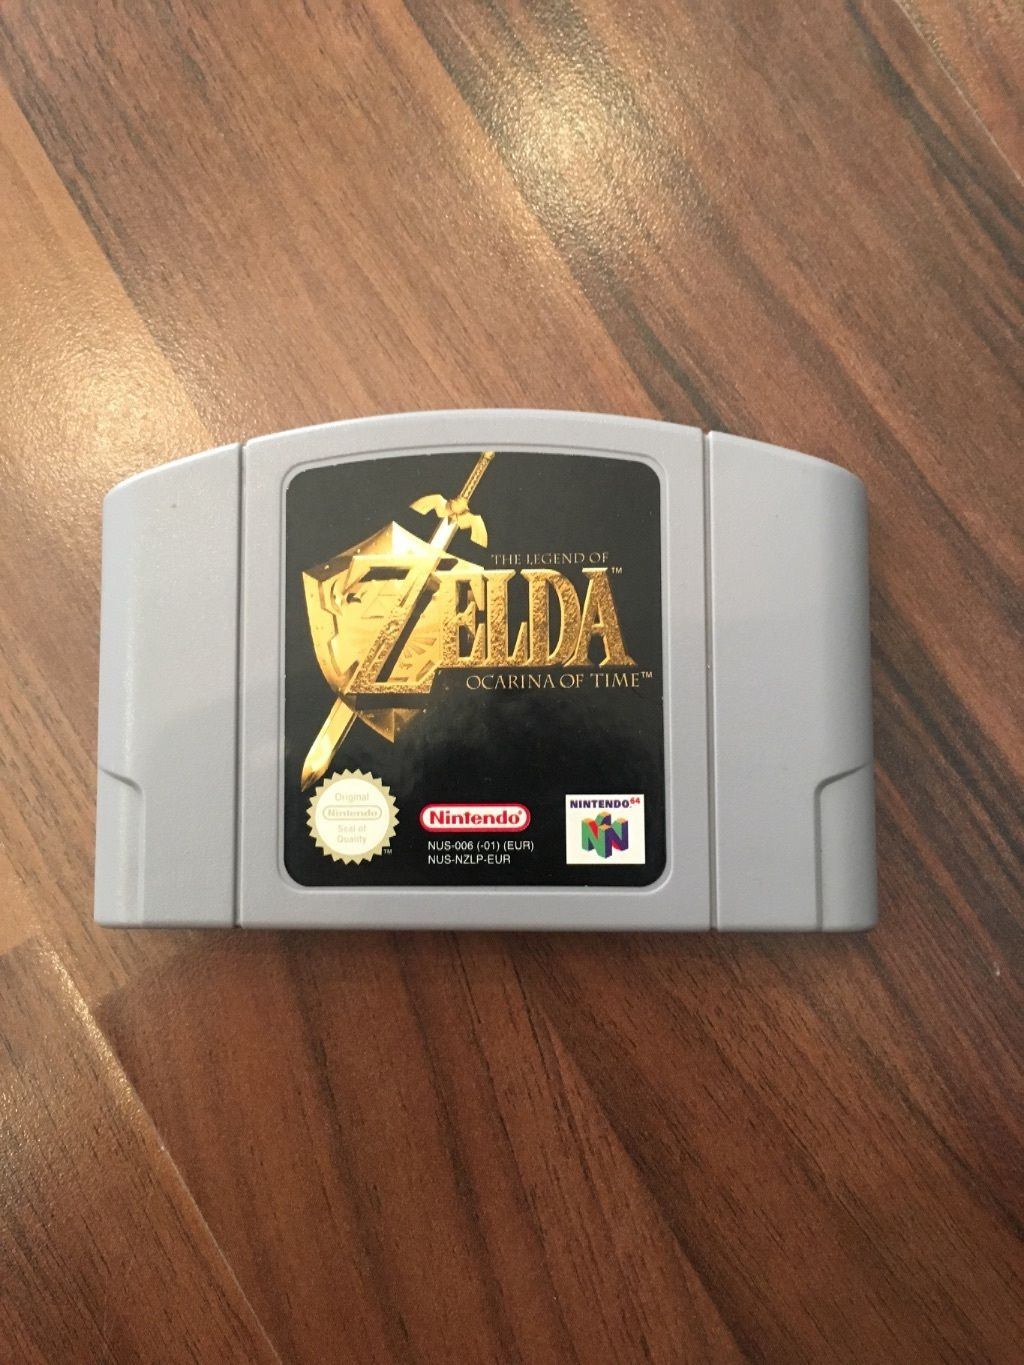 descargar zelda ocarina of time para emulador megan64